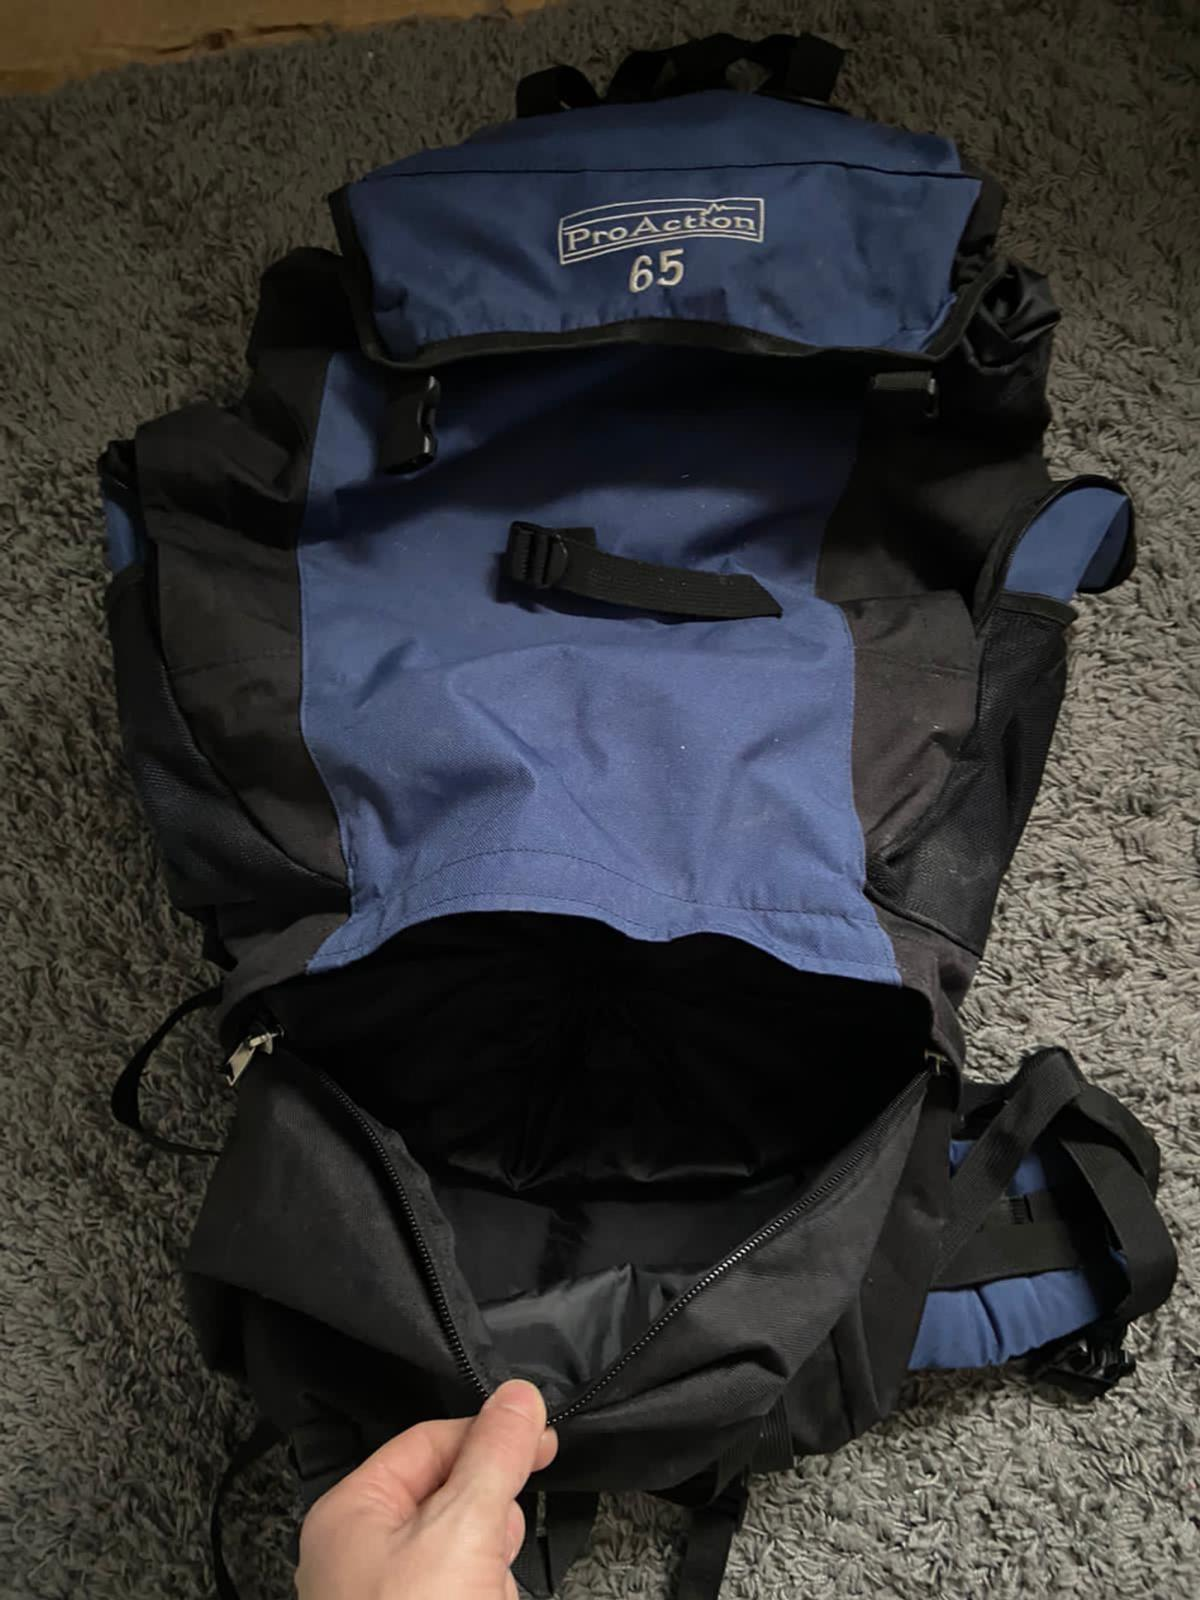 65litre ProAction rucksack with 4 zip pockets and the main compartment. Cushion waist support around the main buckles. Not been used for a few years